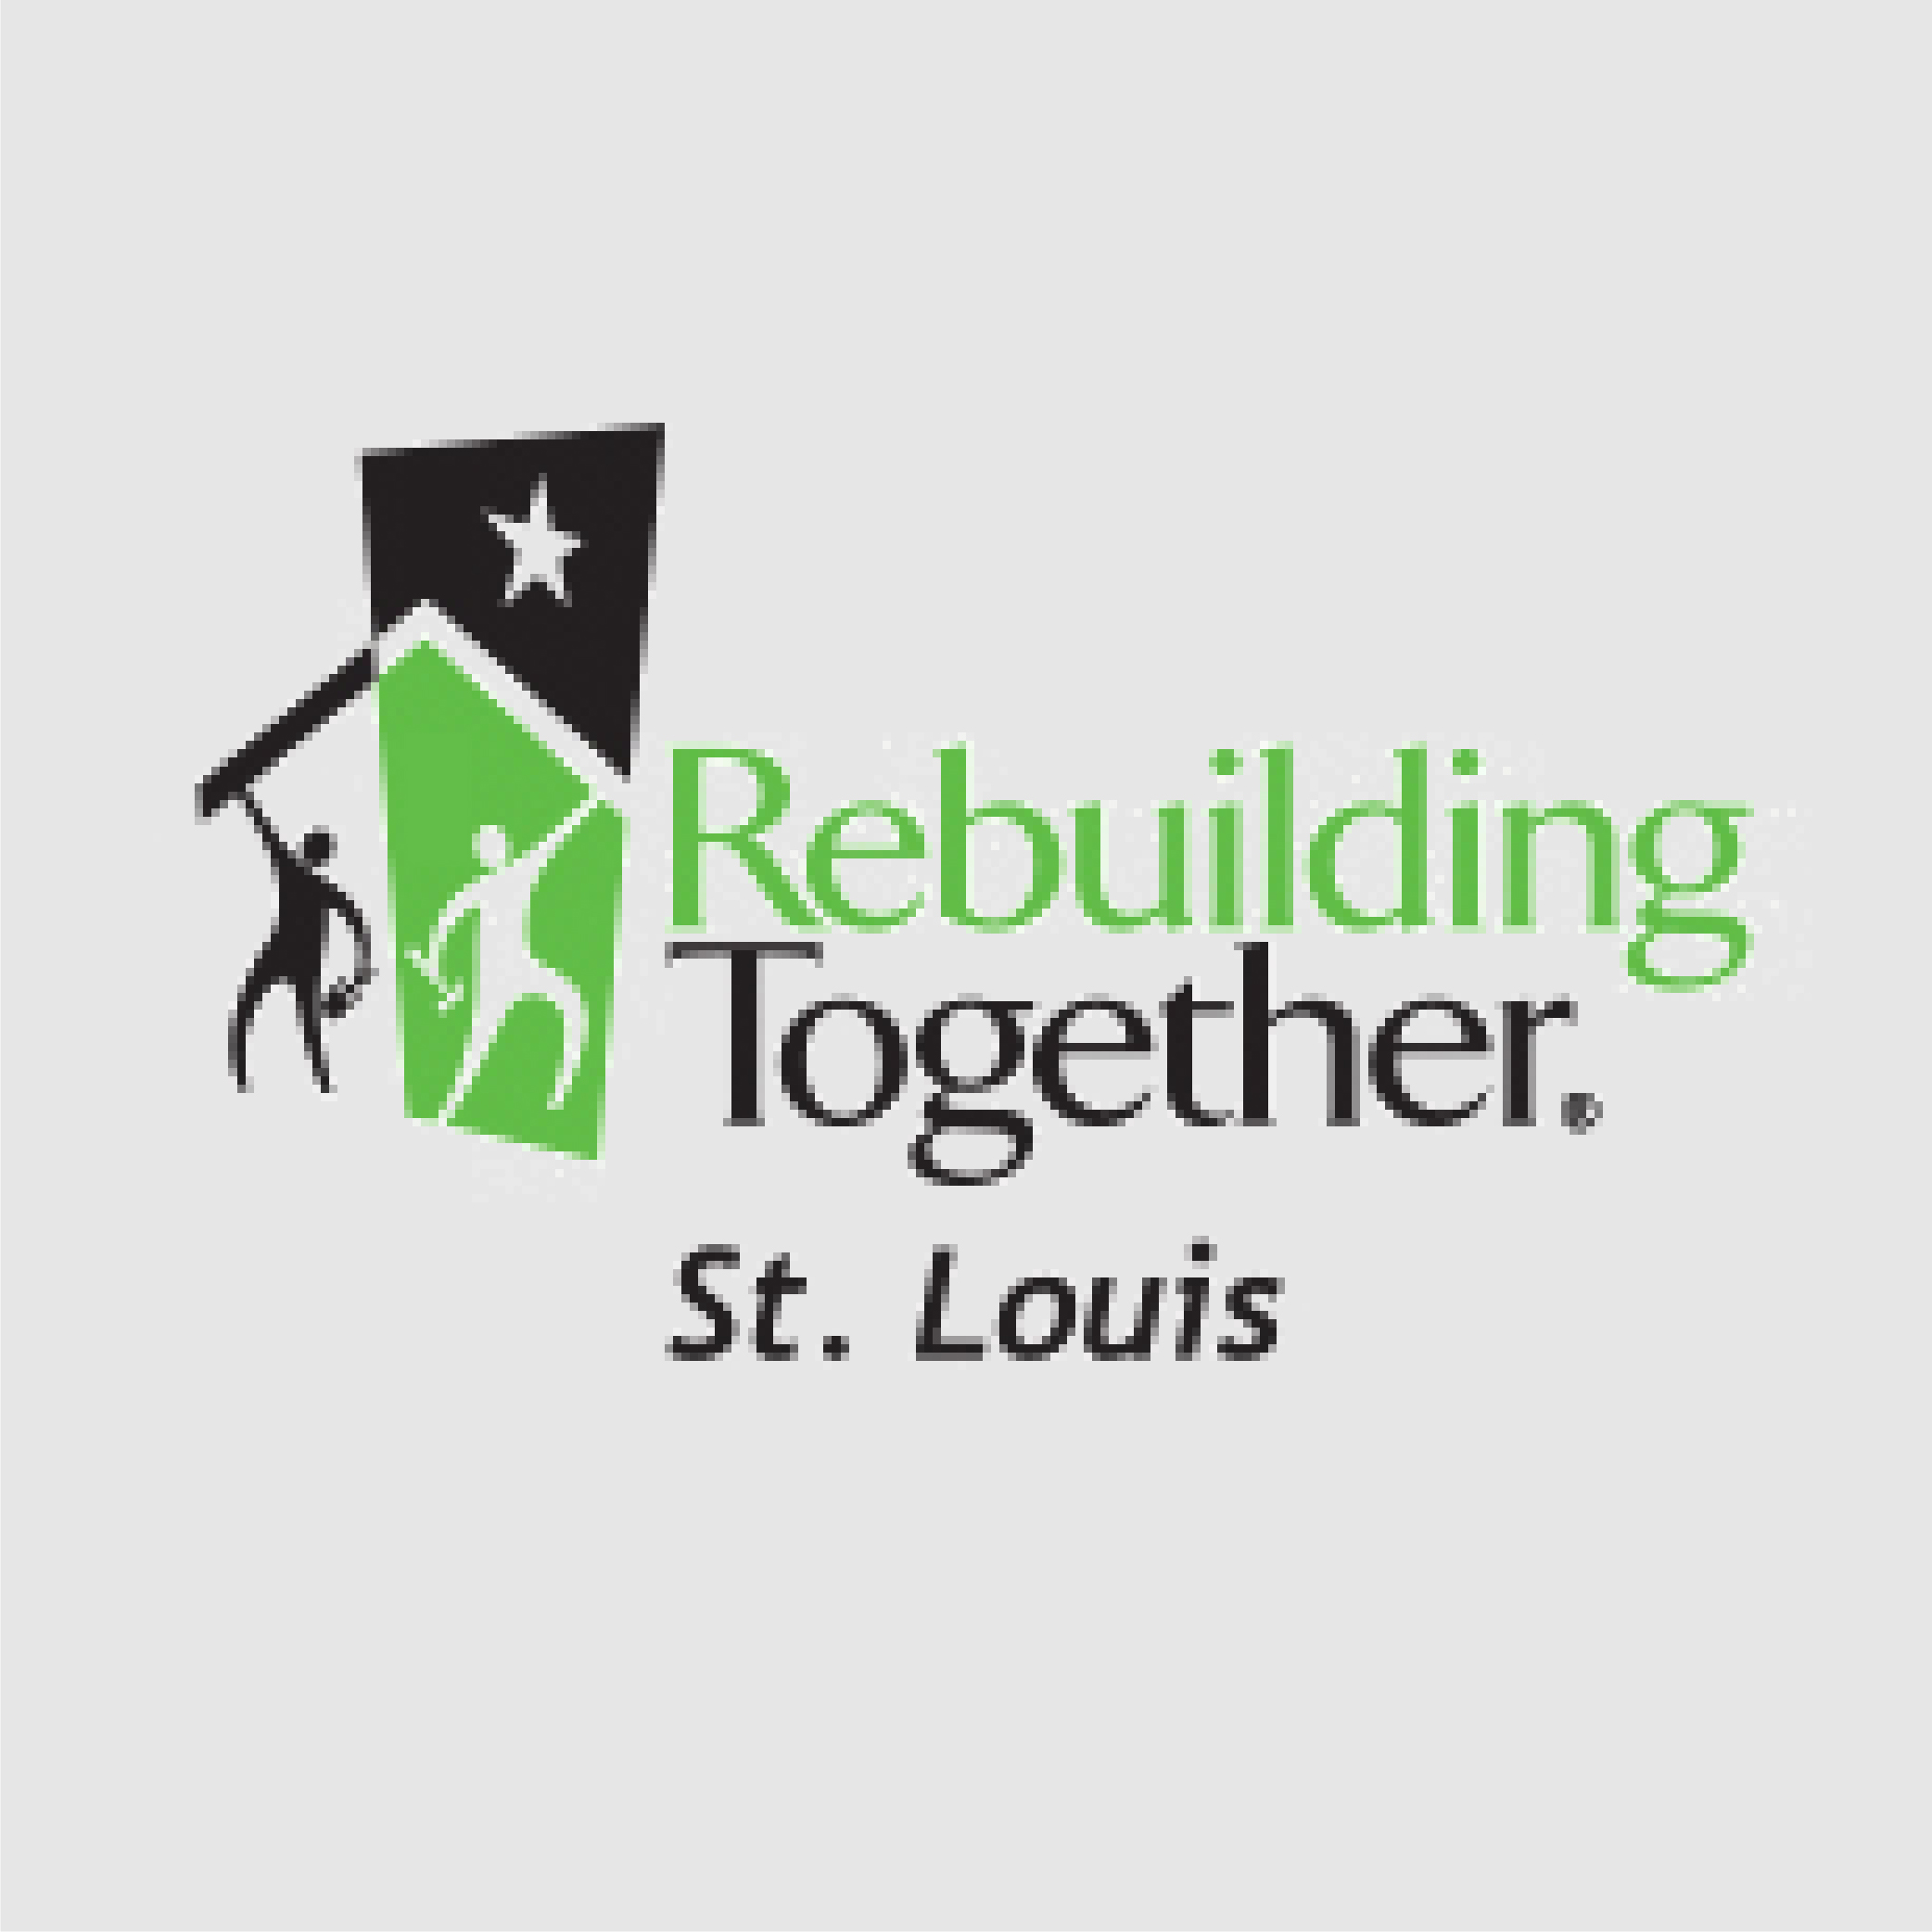 Rebuilding Together St. Louis    Jessica Conner    357 Marshall Ave Suite 2    St. Louis, MO 63119-1827    (314) 918-9818    jconner@rebuildtogether-stl.org     http://www.rebuildtogether-stl.org     Member Since: 2009